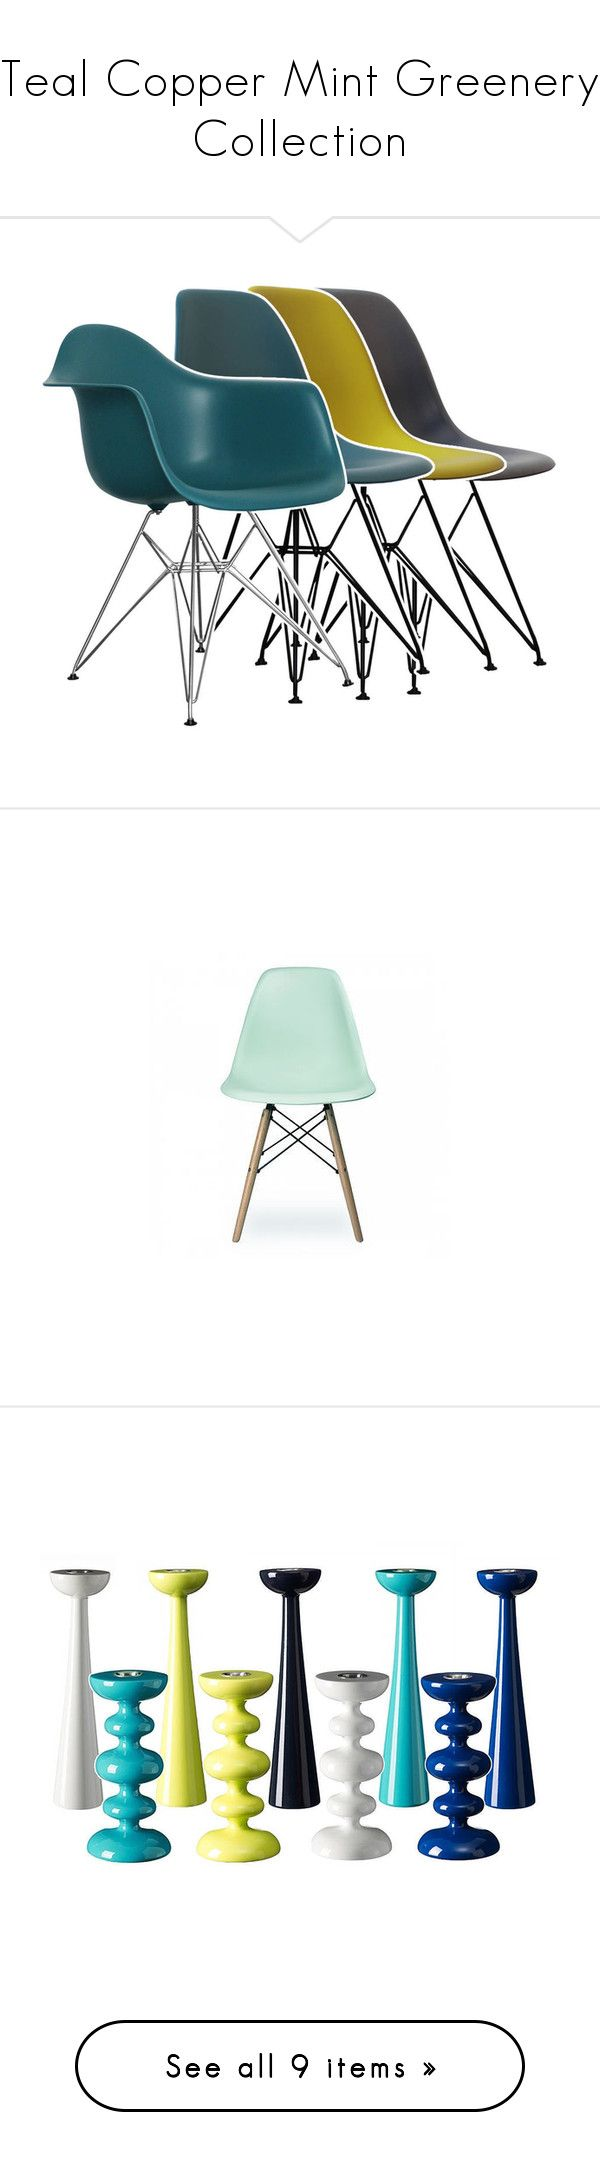 Teal Copper Mint Greenery Collection by cielshopinteriors on Polyvore featuring polyvore, interior, interiors, interior design, home, home decor, interior decorating, Ciel, Anja, CALLIGARIS, Kate Spade, Bloomingville, Art Addiction, Holly's House, Allstate Floral, springflorals, furniture, chairs, eames style chair, eames inspired chair, ciel, colored furniture, colored chairs, dining chairs, spring chair, pastel furniture, colored dining chairs, candles & candleholders, handmade home decor…